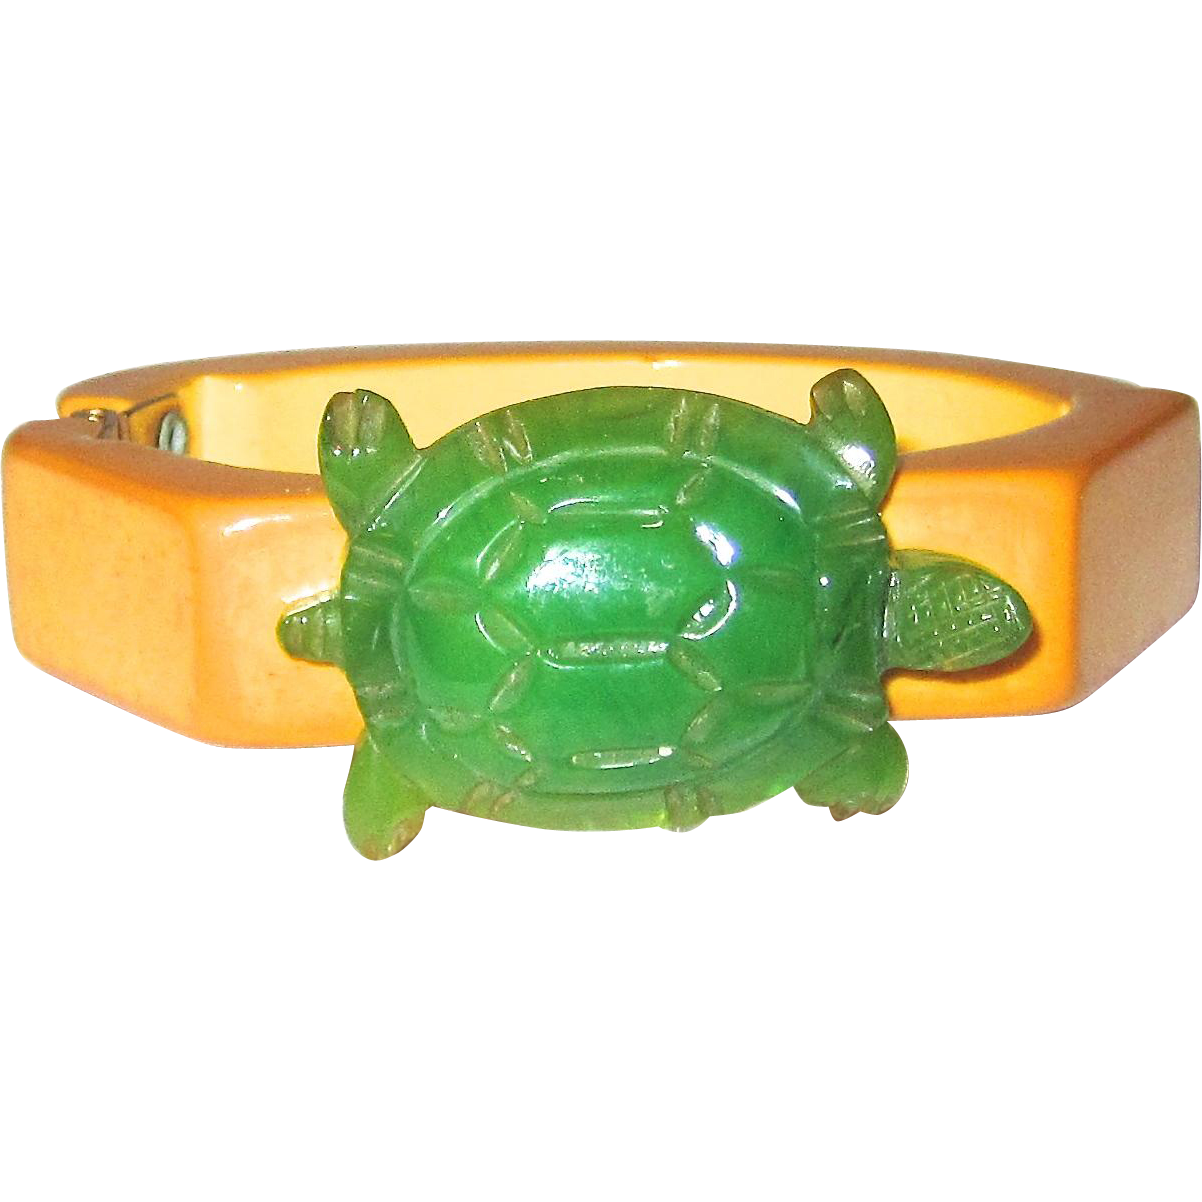 Adorable and Unusual Bakelite Hinge Bracelet with Turtle